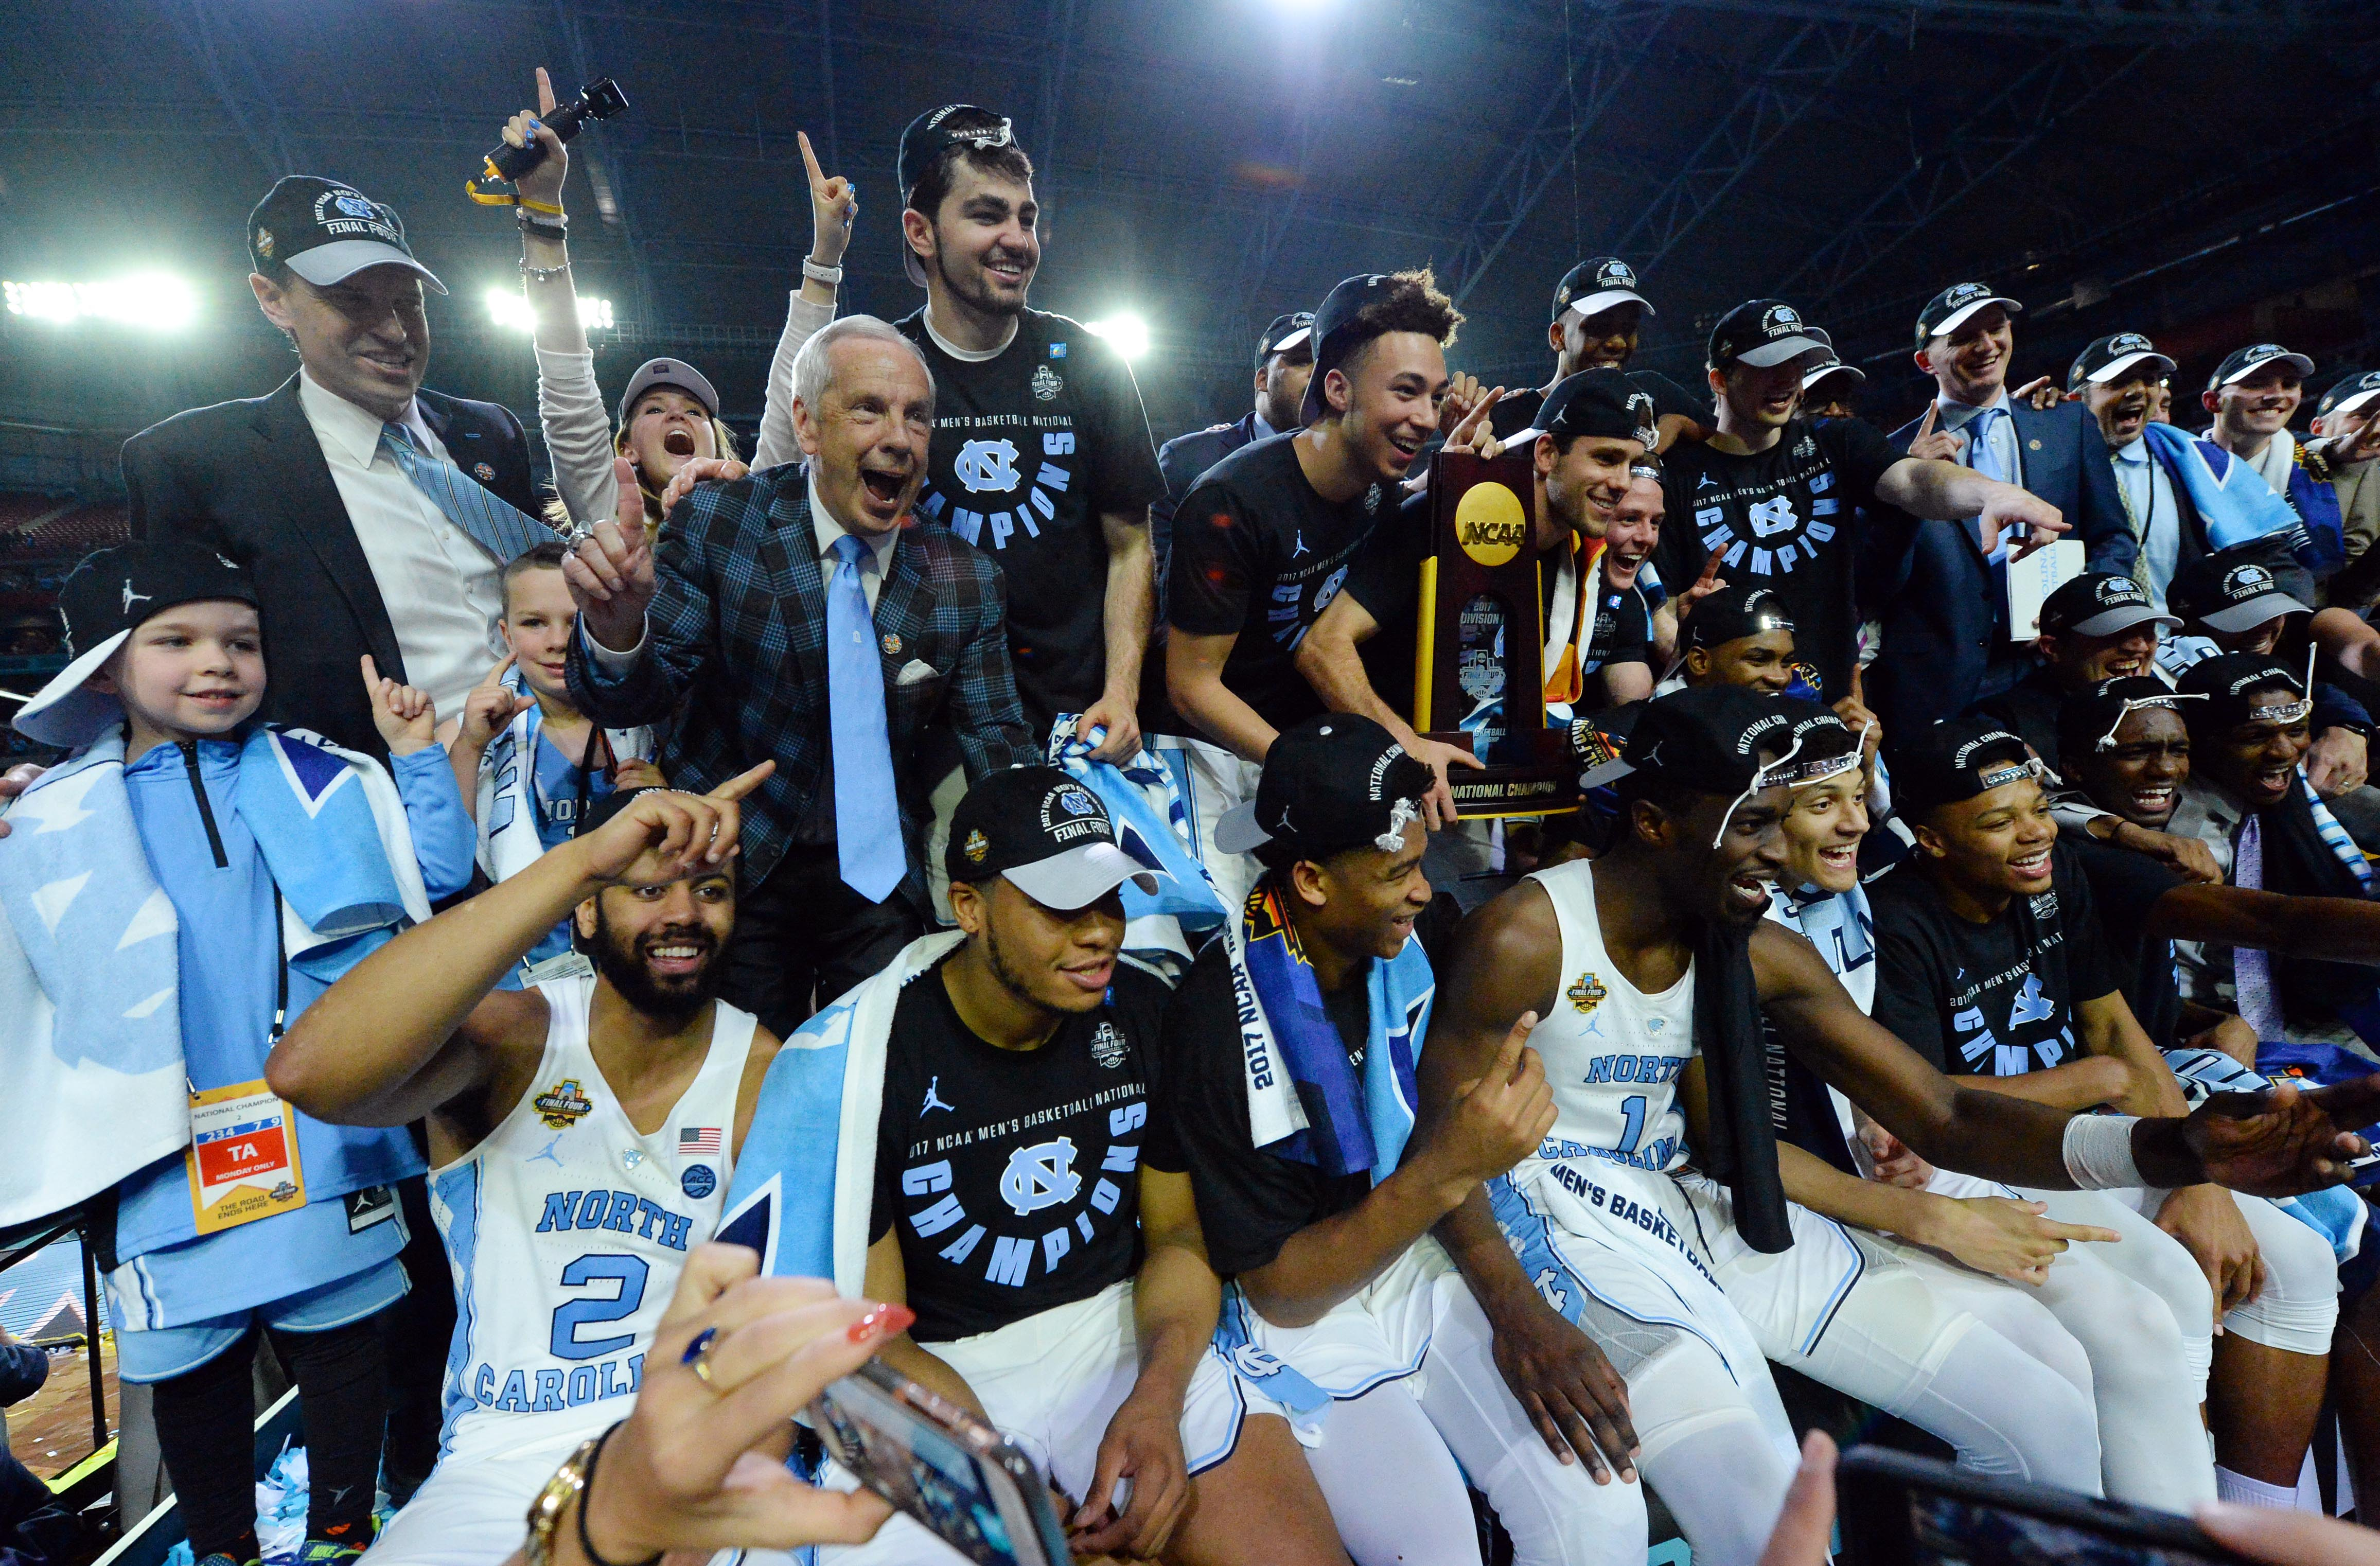 Highlights from the national championship gonzaga vs north carolina - Unc Beats Gonzaga To Claim 6th National Title The Heels And Zags Treated Us To An Incredible Title Game